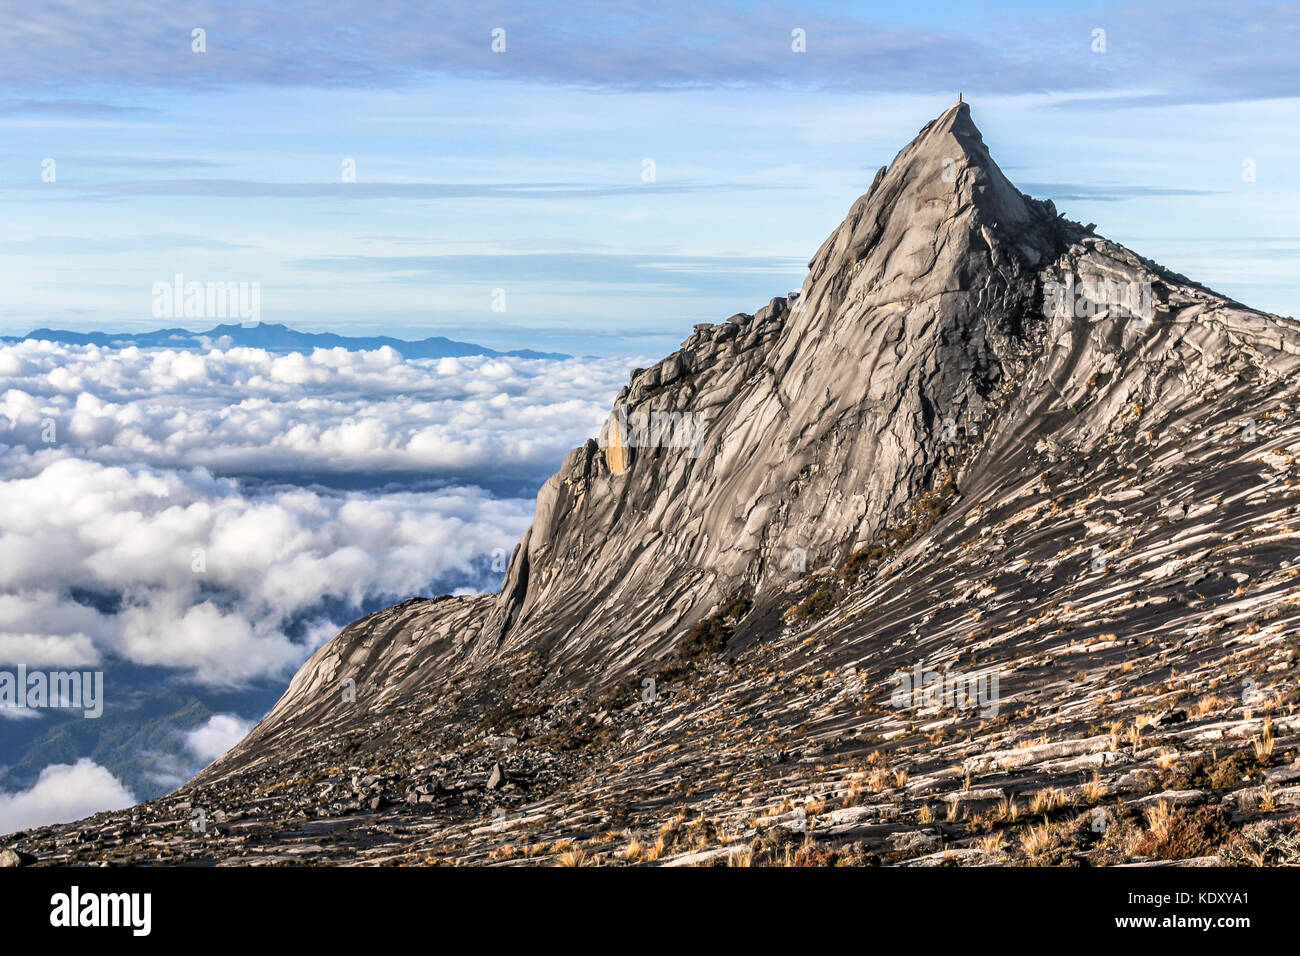 Peak of Mount Kinabalu and clouds below in the morning hours, Kota Kinabalu national park Borneo, Malaysia - Stock Image